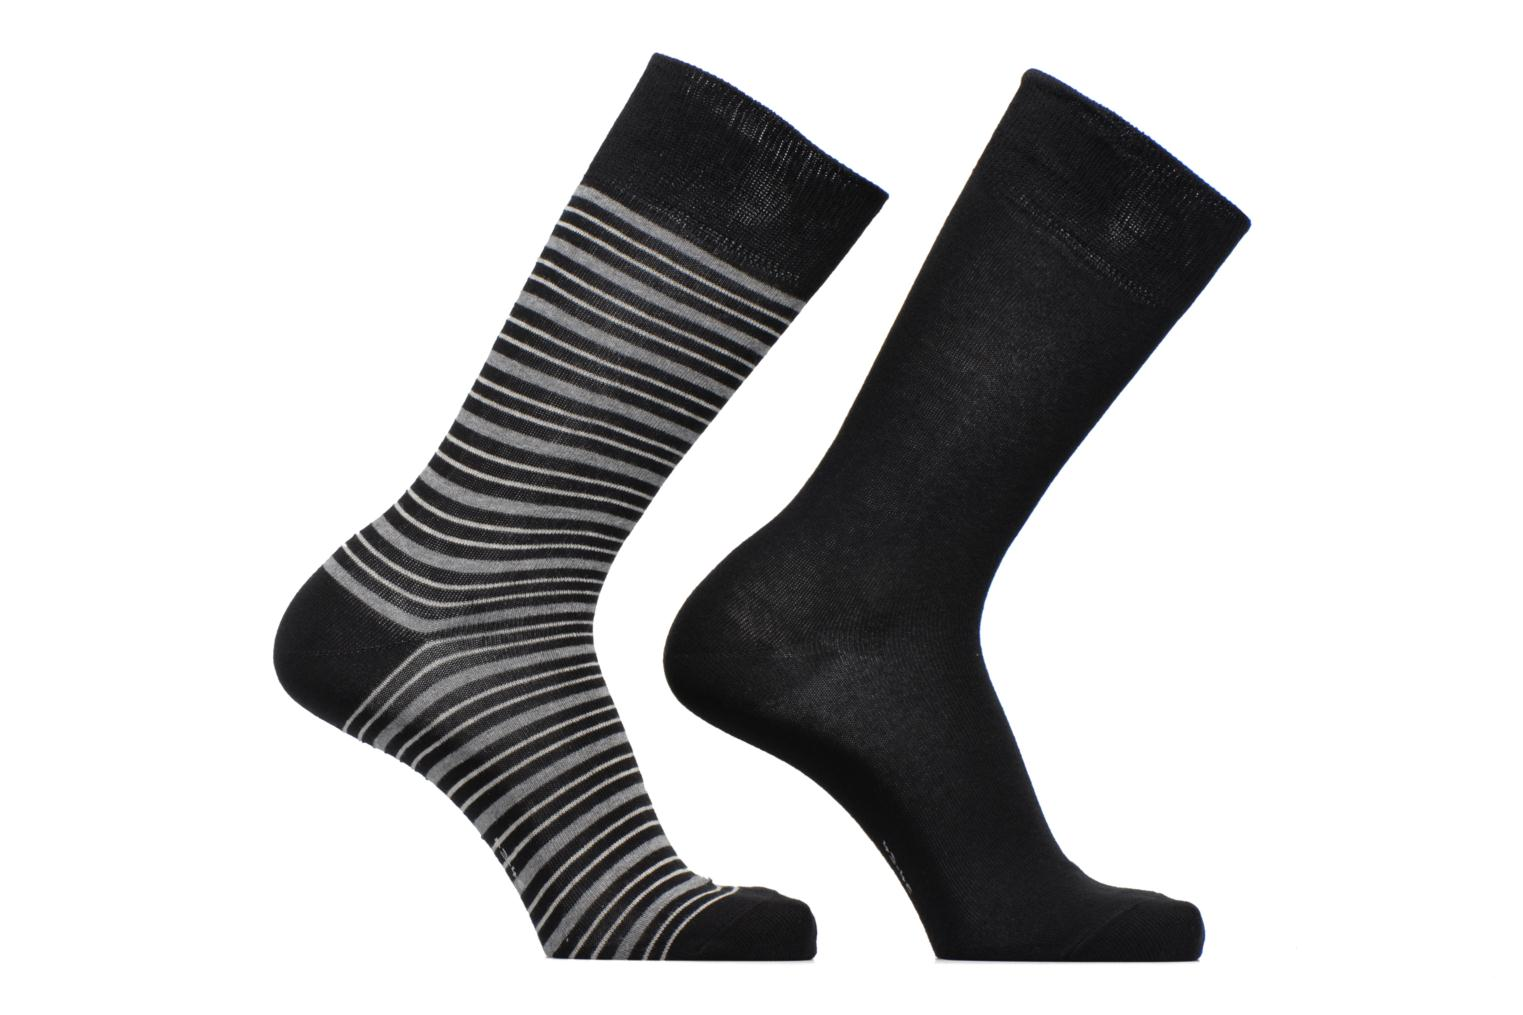 Chaussettes Coloured Sripes Lot de 2 3000 Black